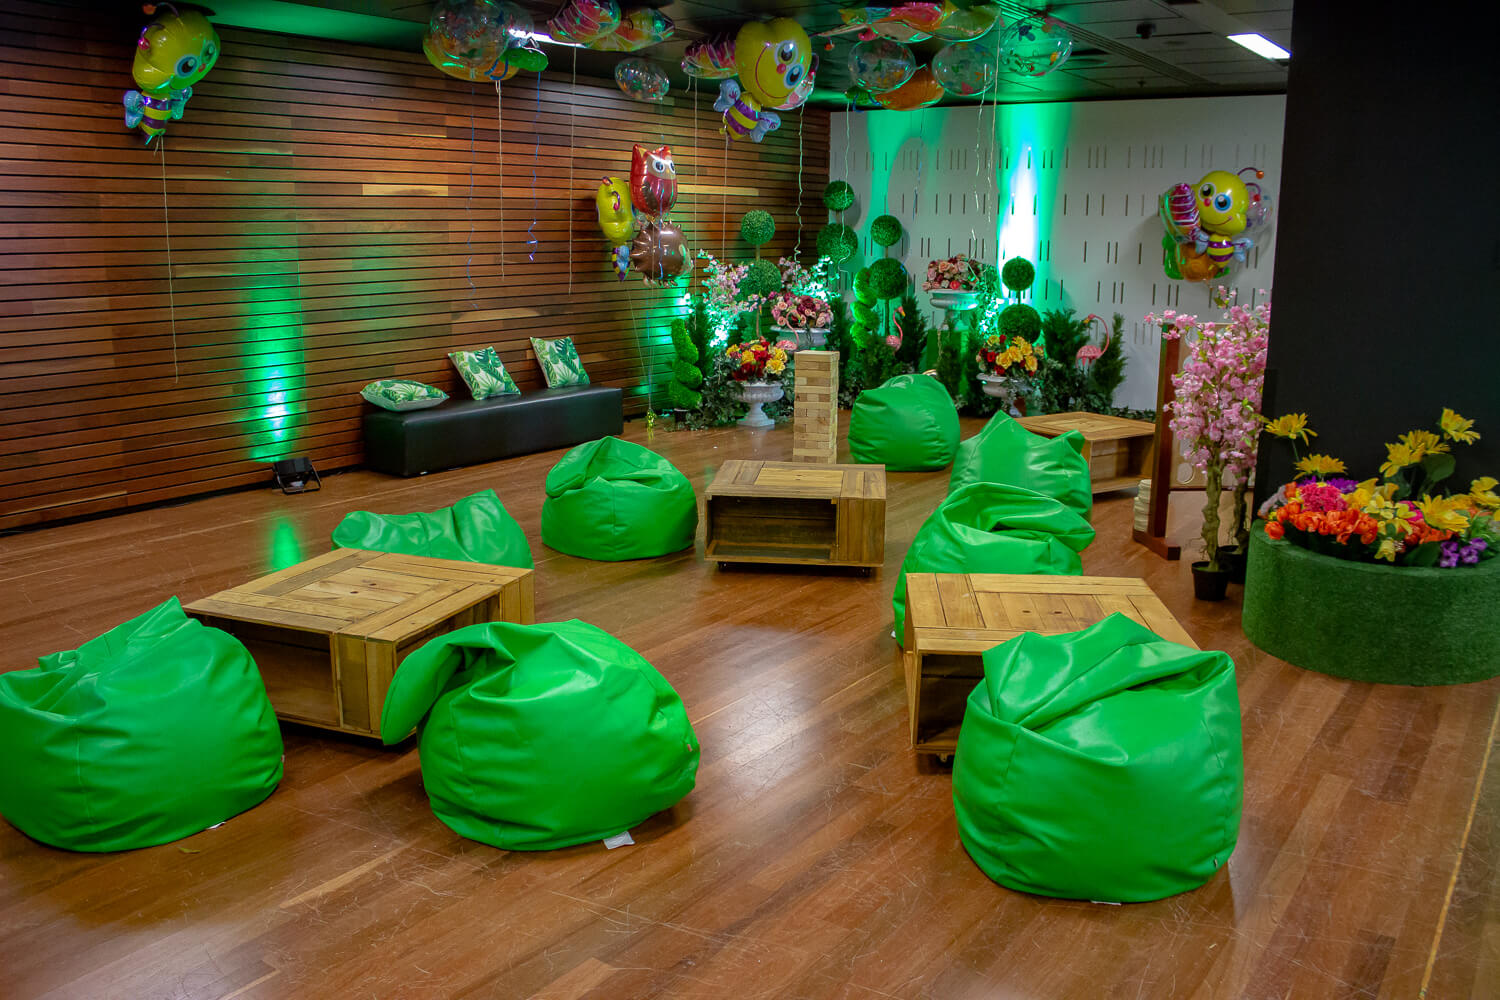 Green bean bag hire melbourne in forest setting